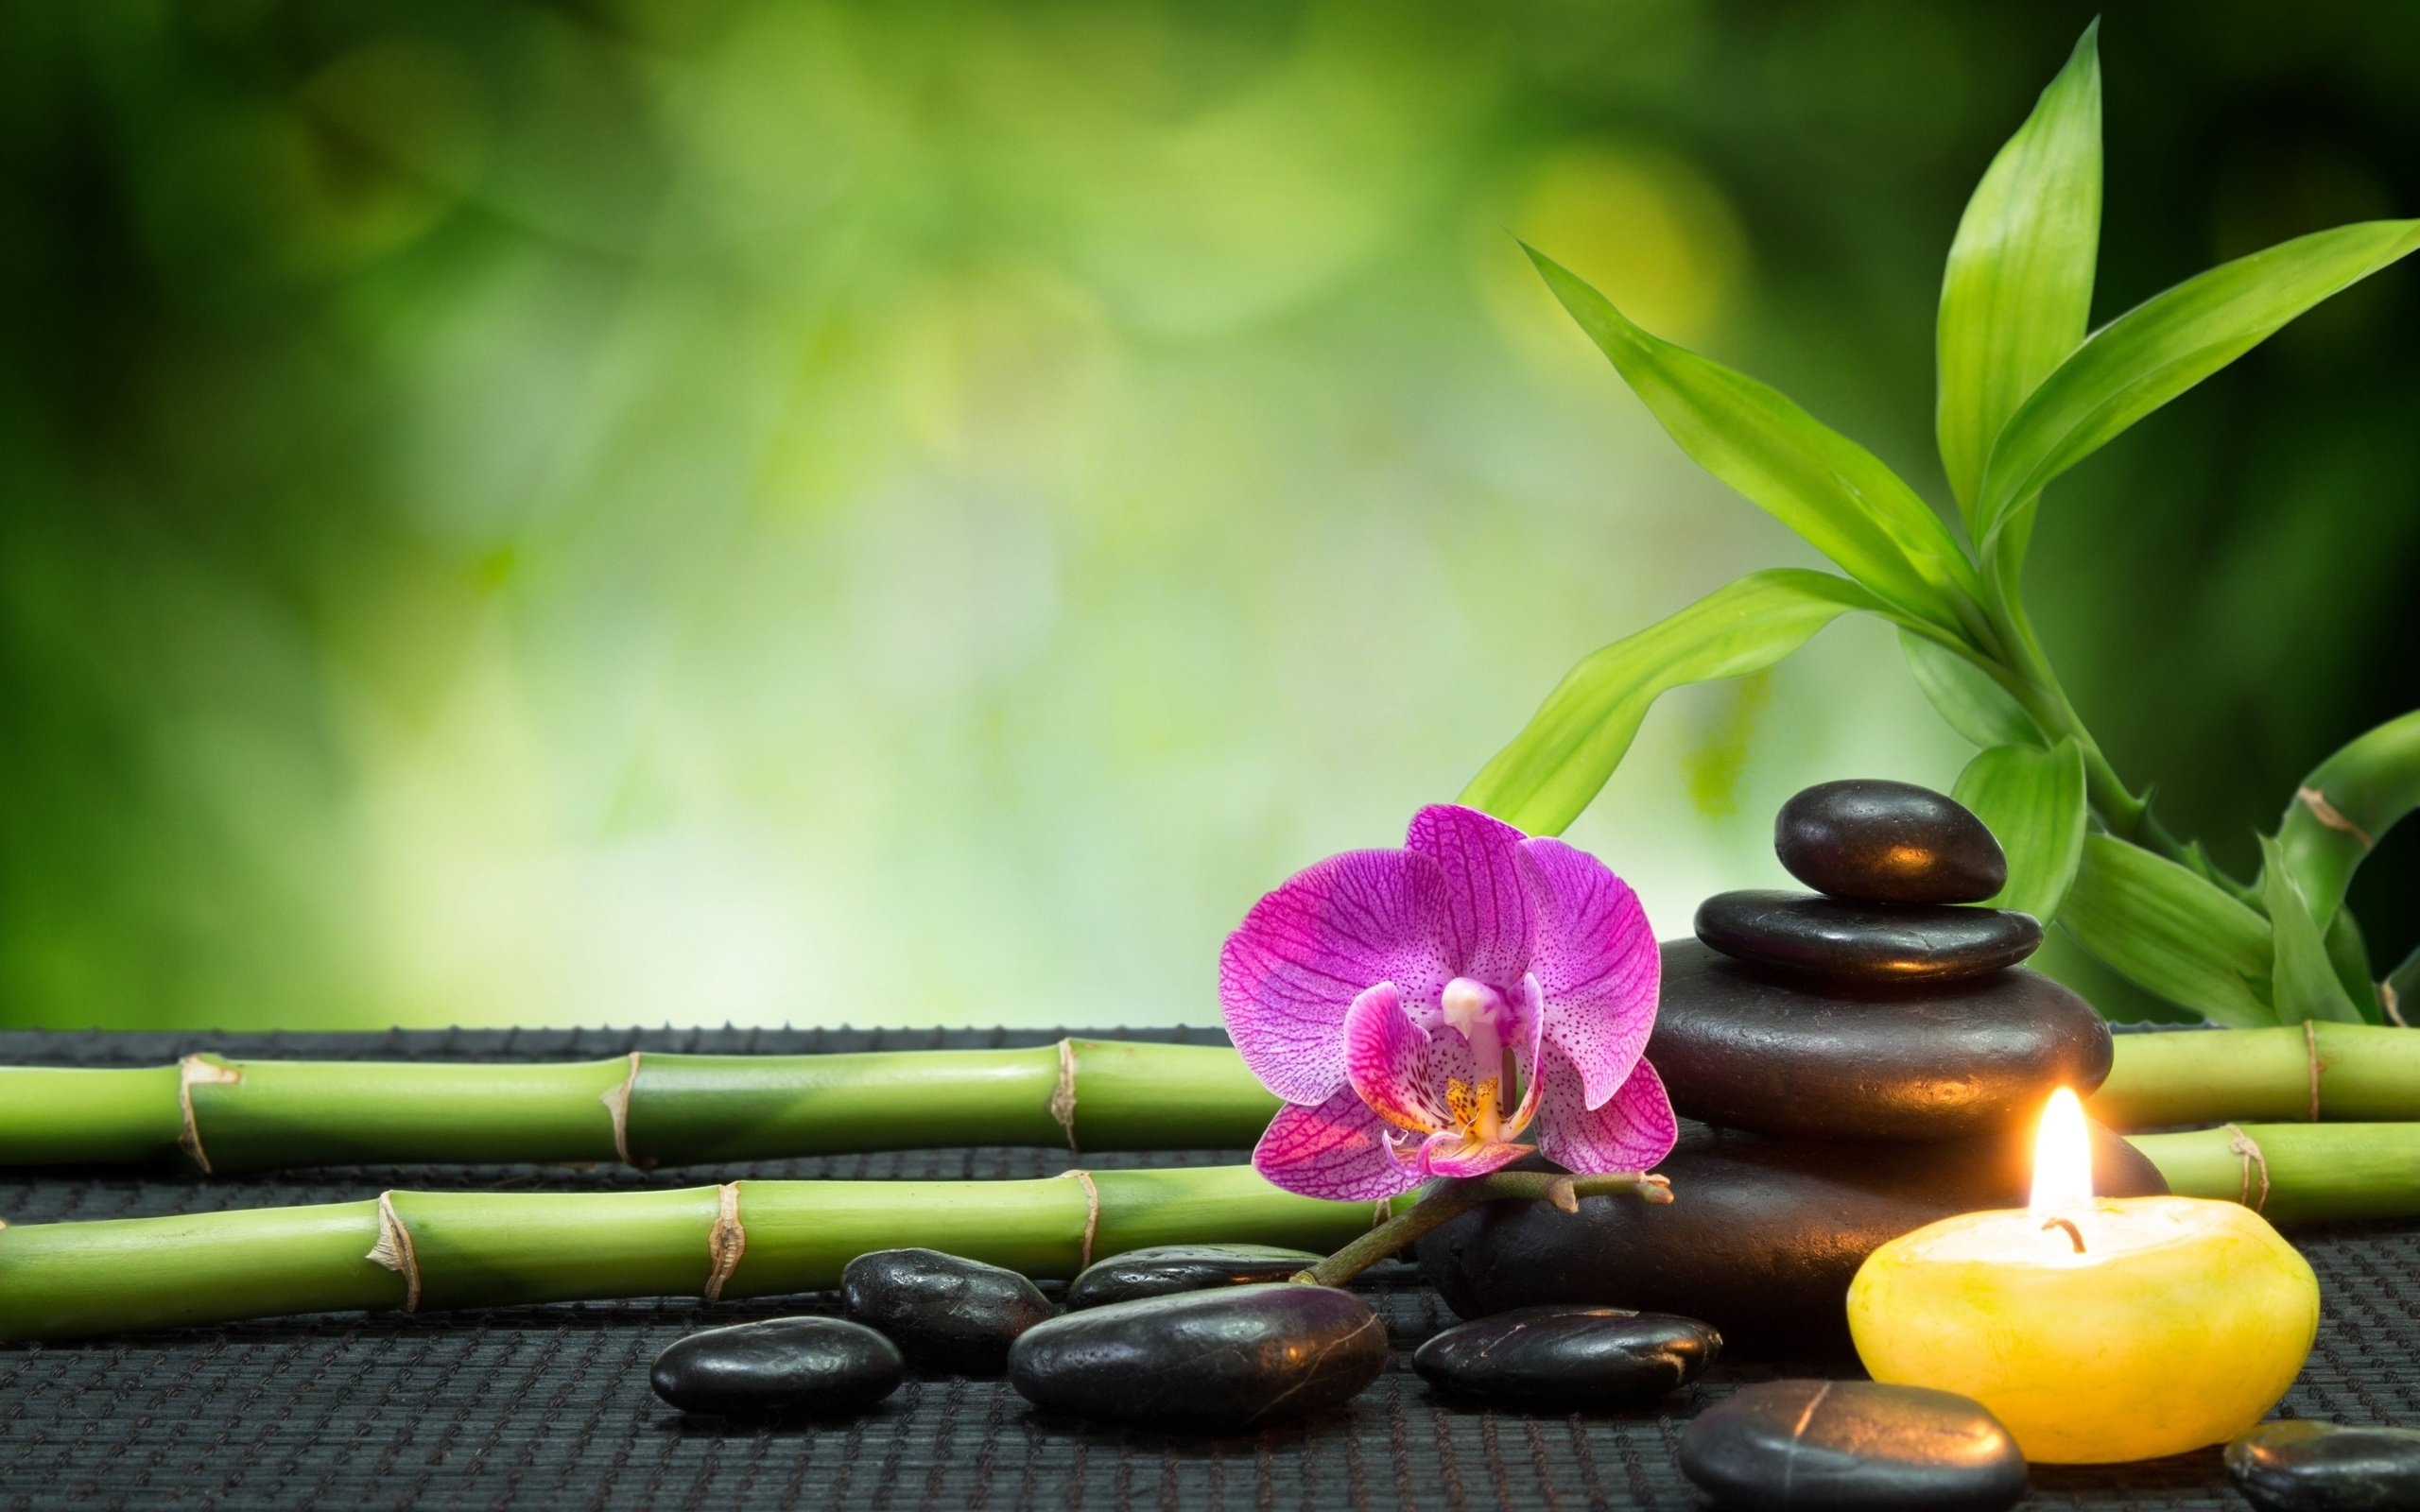 Stones and Spa Massage Wallpapers HD Desktop and Mobile Backgrounds 2560x1600